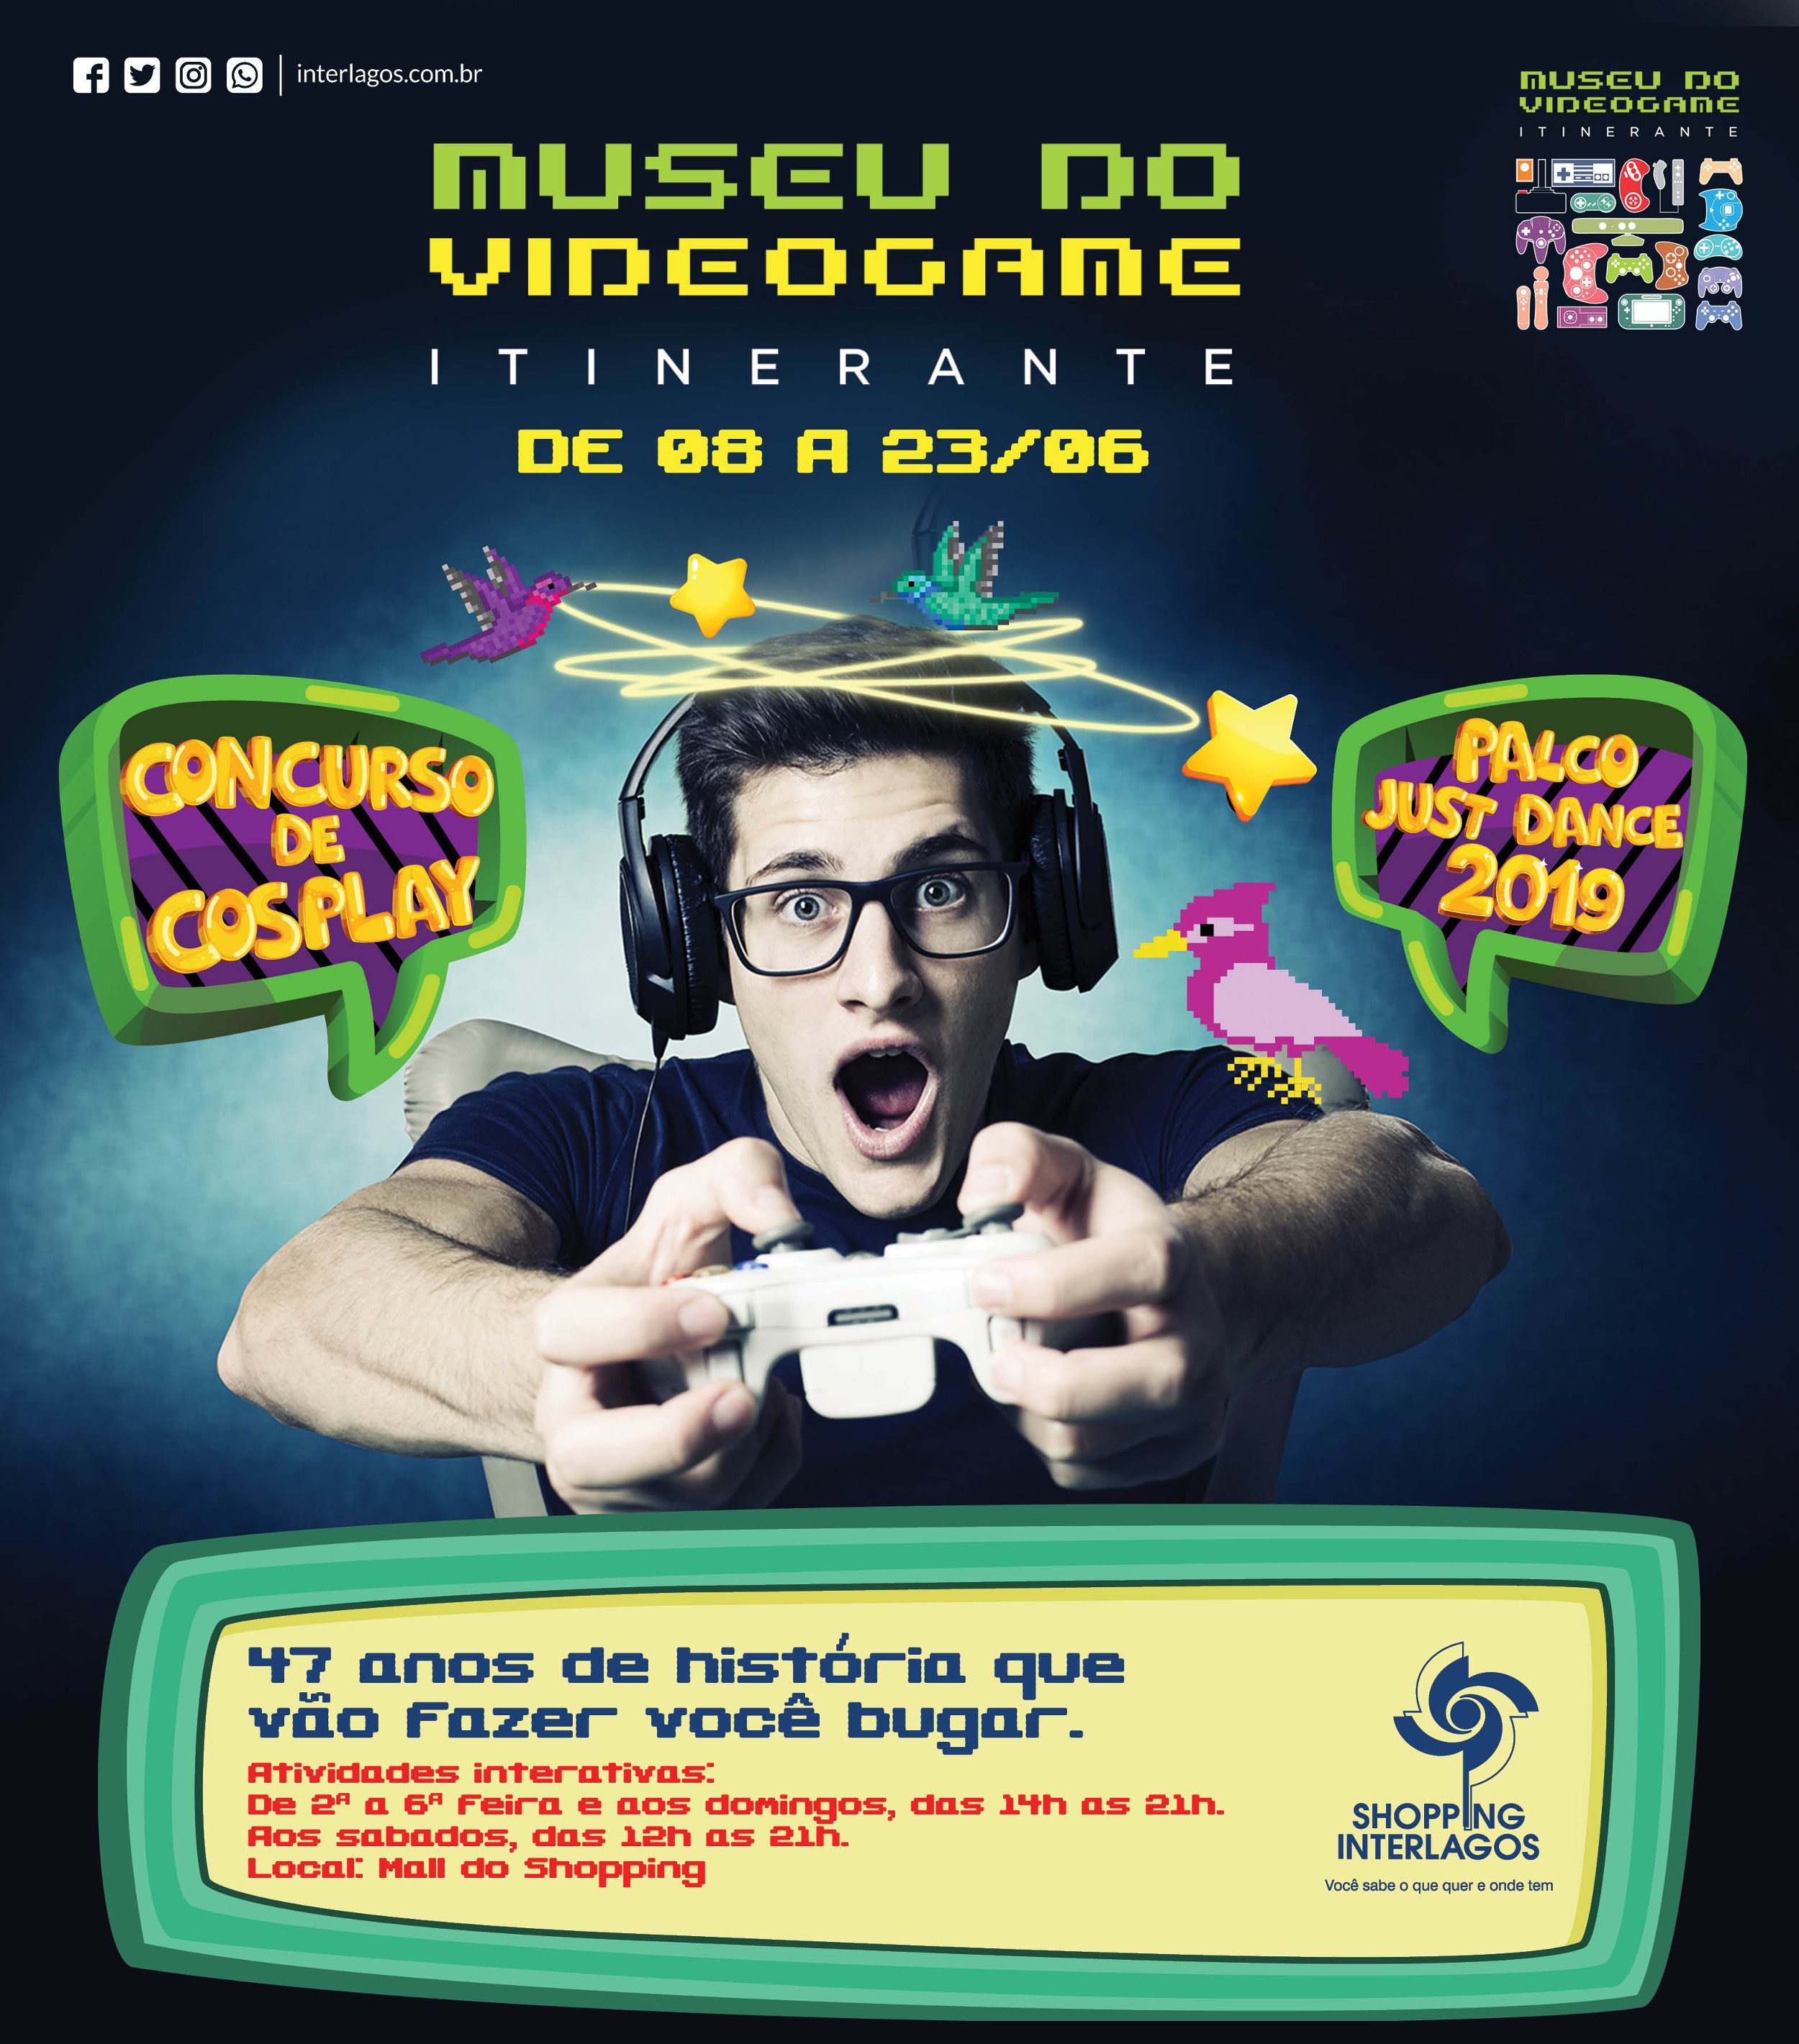 Museu do Vídeo Game